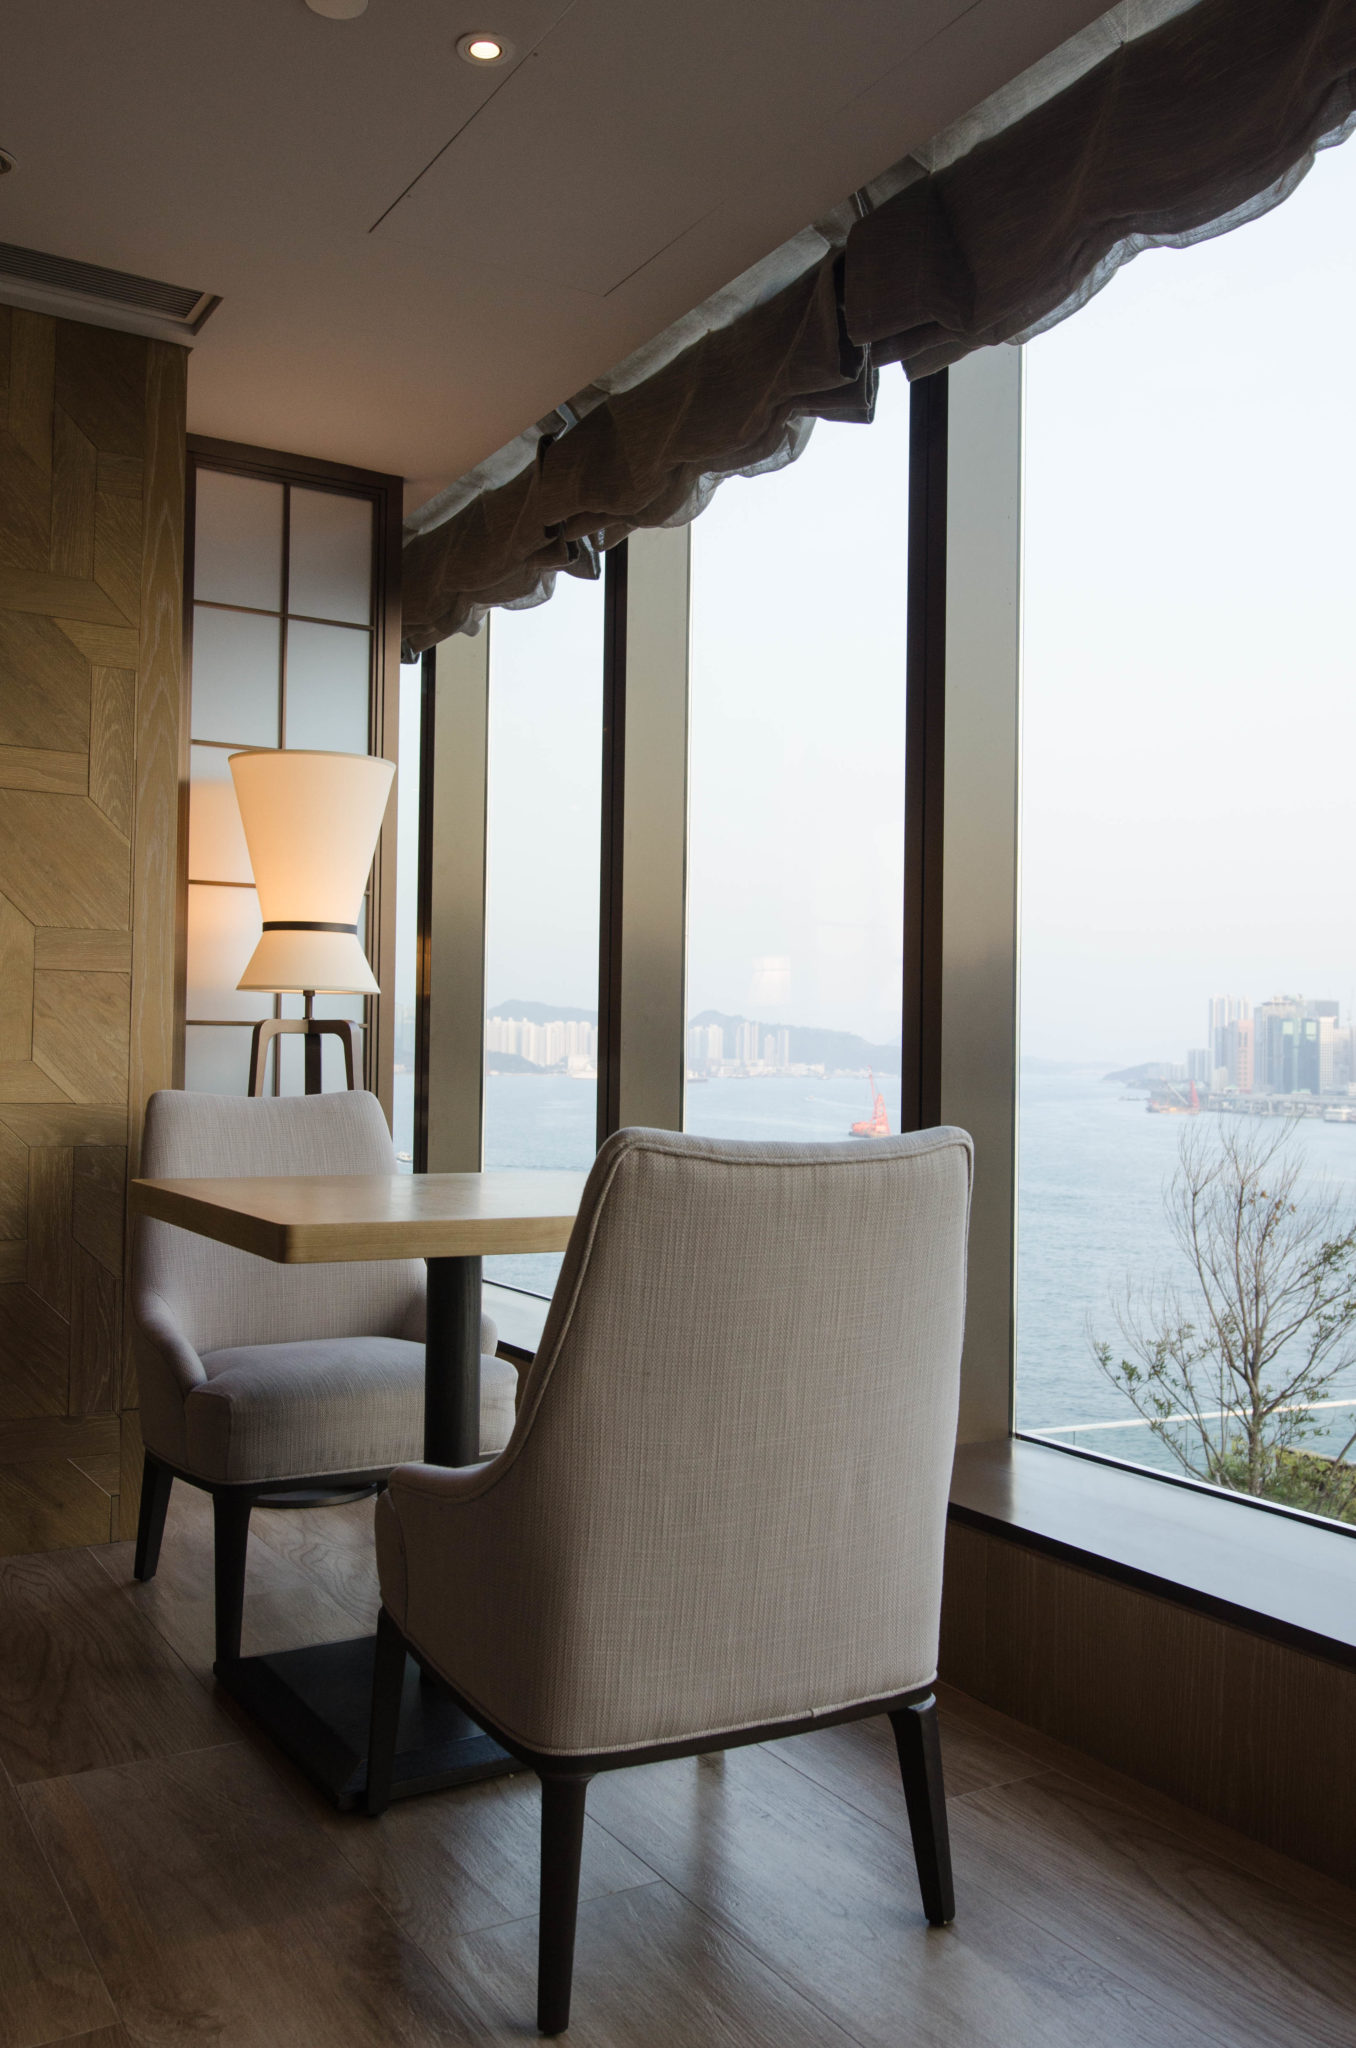 The Kerry Hotel Hong Kong in Hung Hom is located right at the Pearl River.